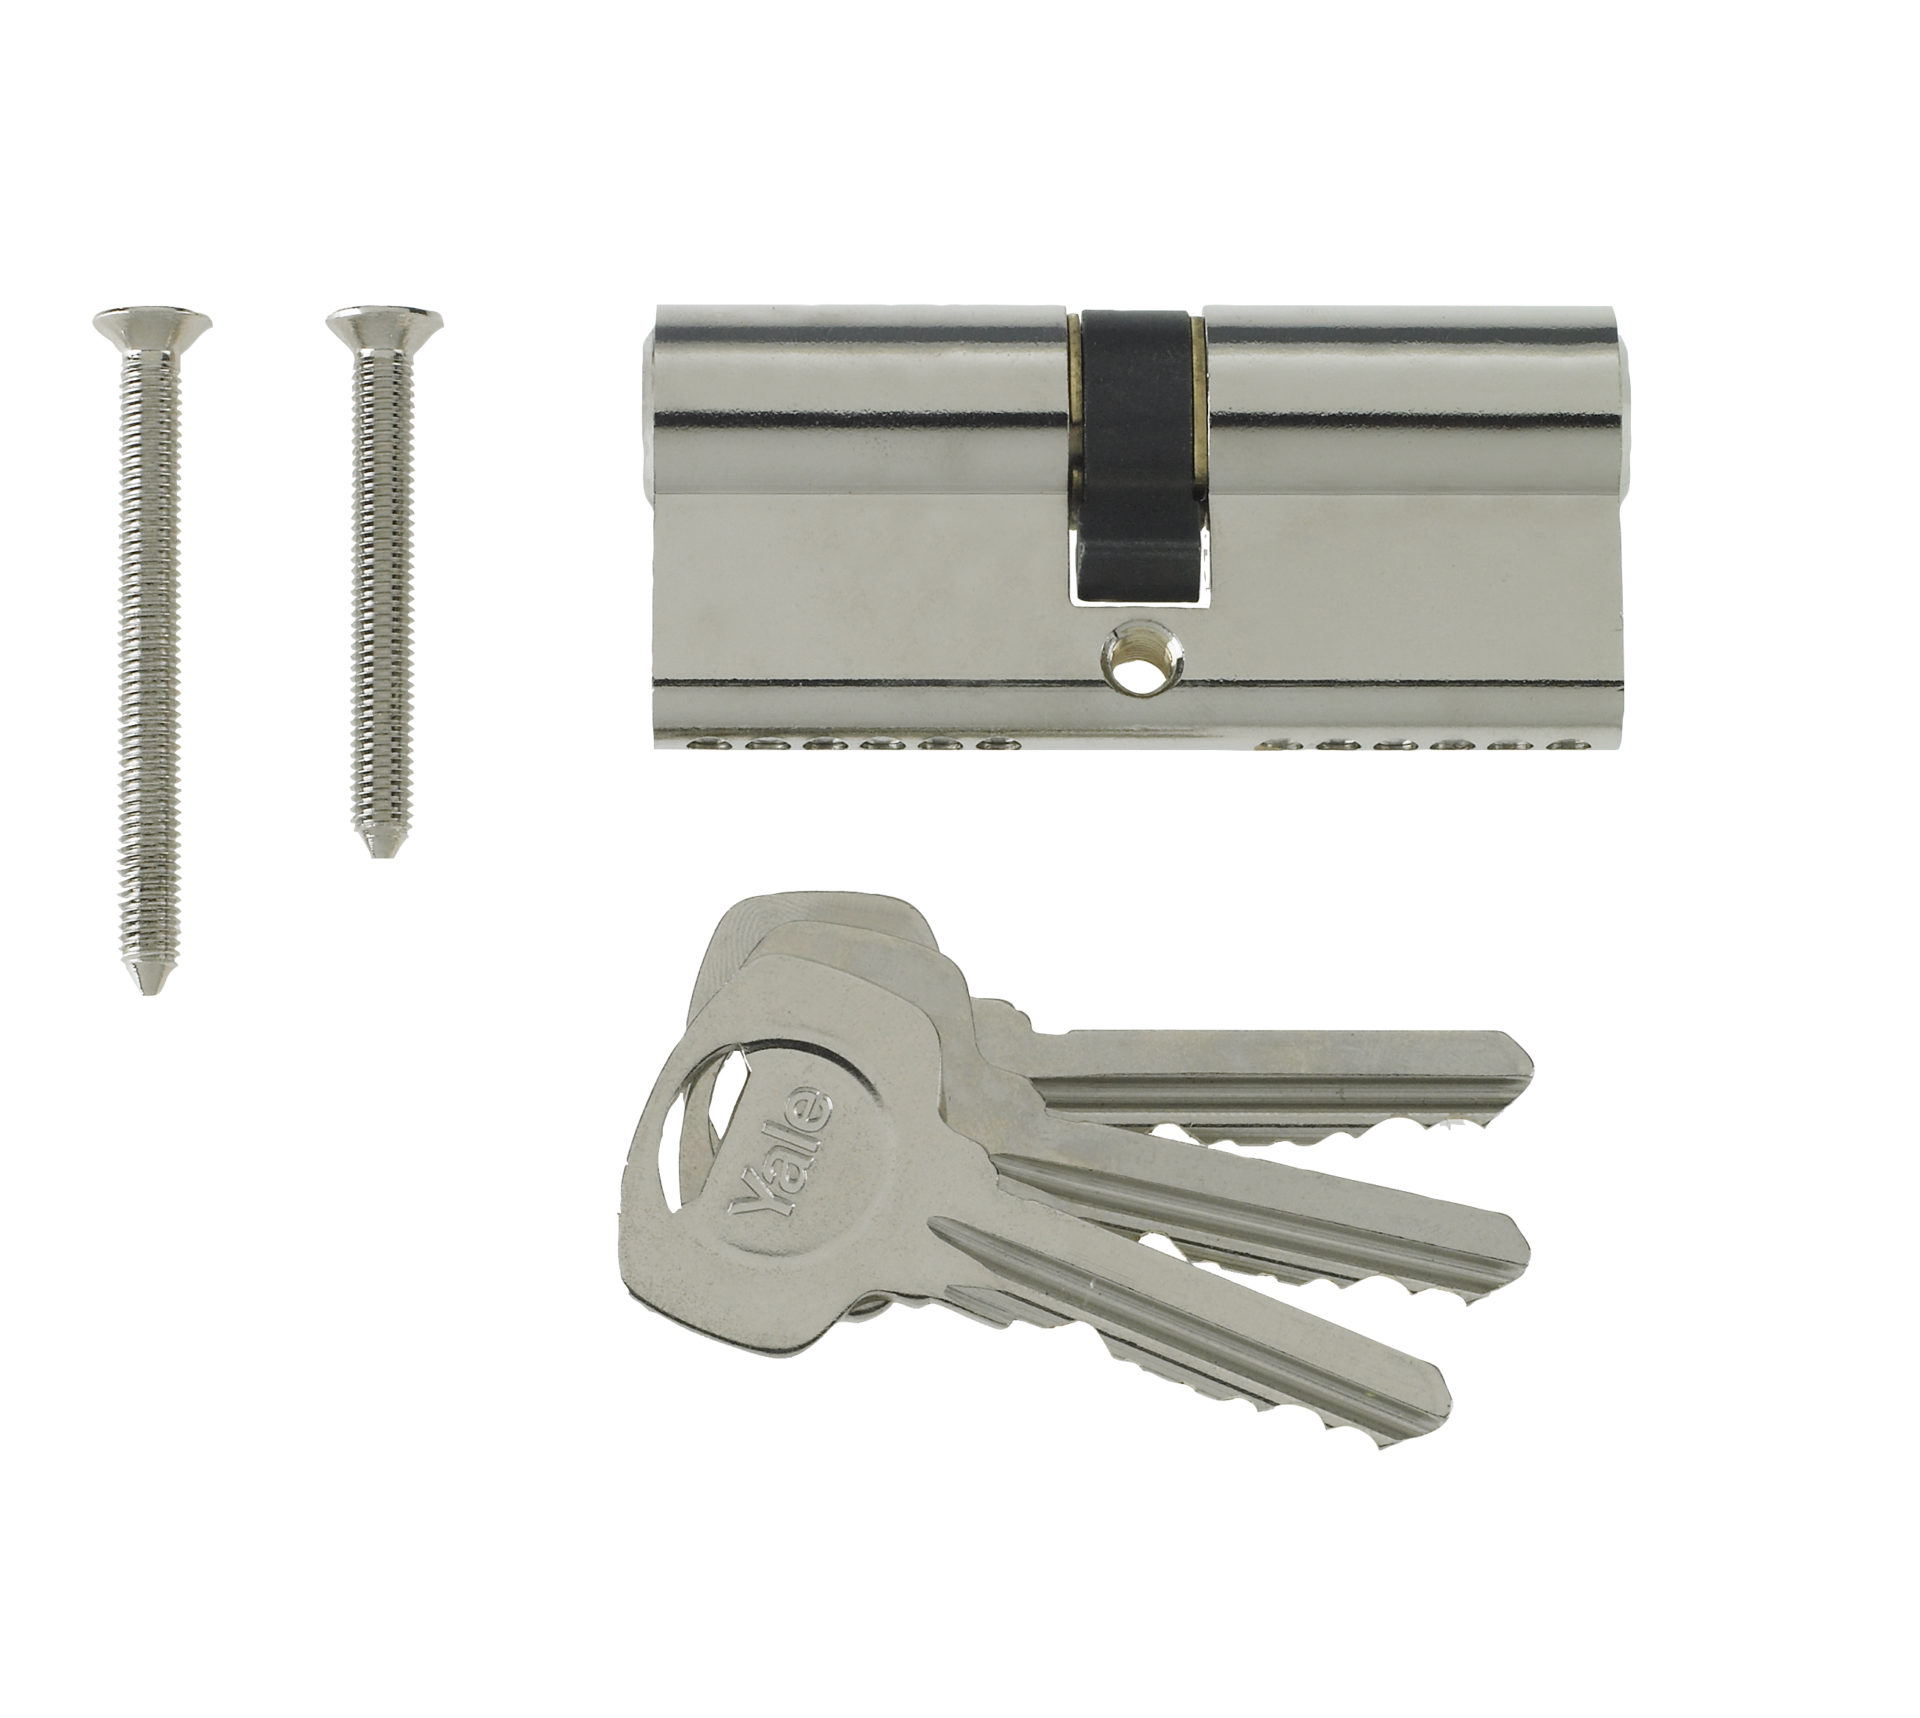 Yale 6 Pin Euro Profile Cylinder Lock Nickle 45/55 (100mm) C/w 3 Keys